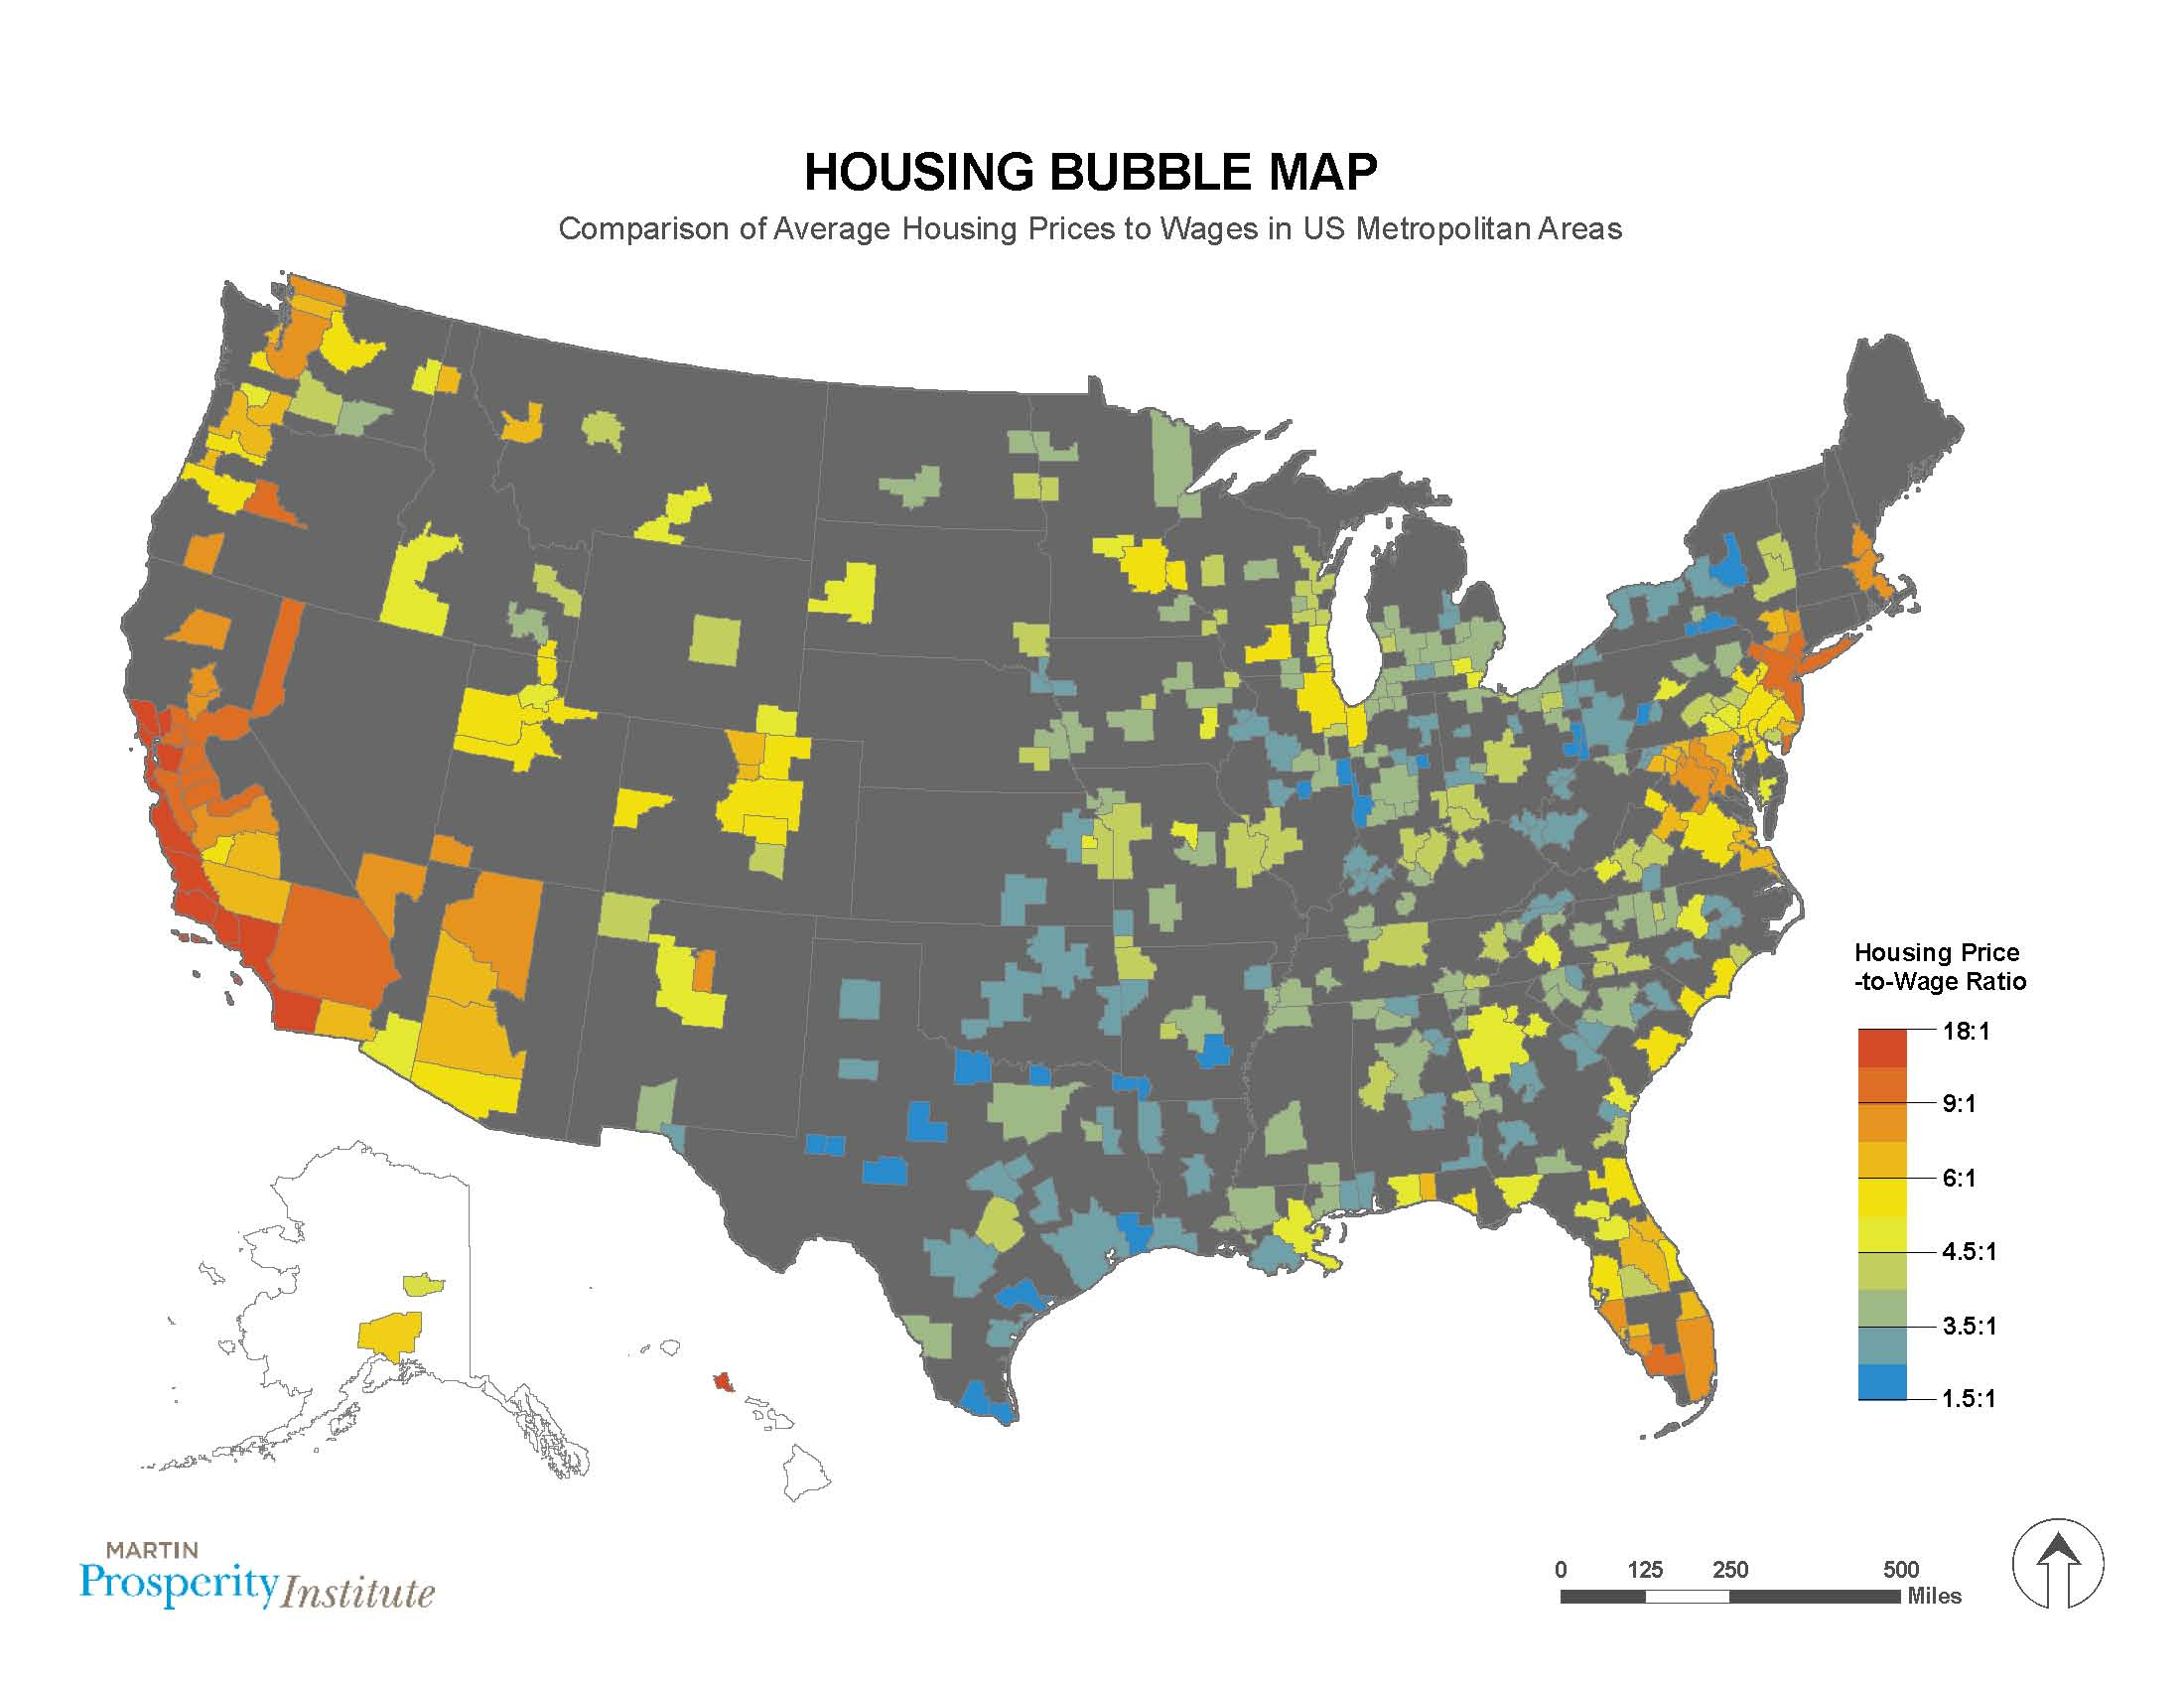 Bubble Cities - The Atlantic on unemployment rate map, transportation map, las vegas nevada map, value map, health care map, home prices map, average heating for the united states map, subang bestari map, amenities map, poverty map, real estate map,